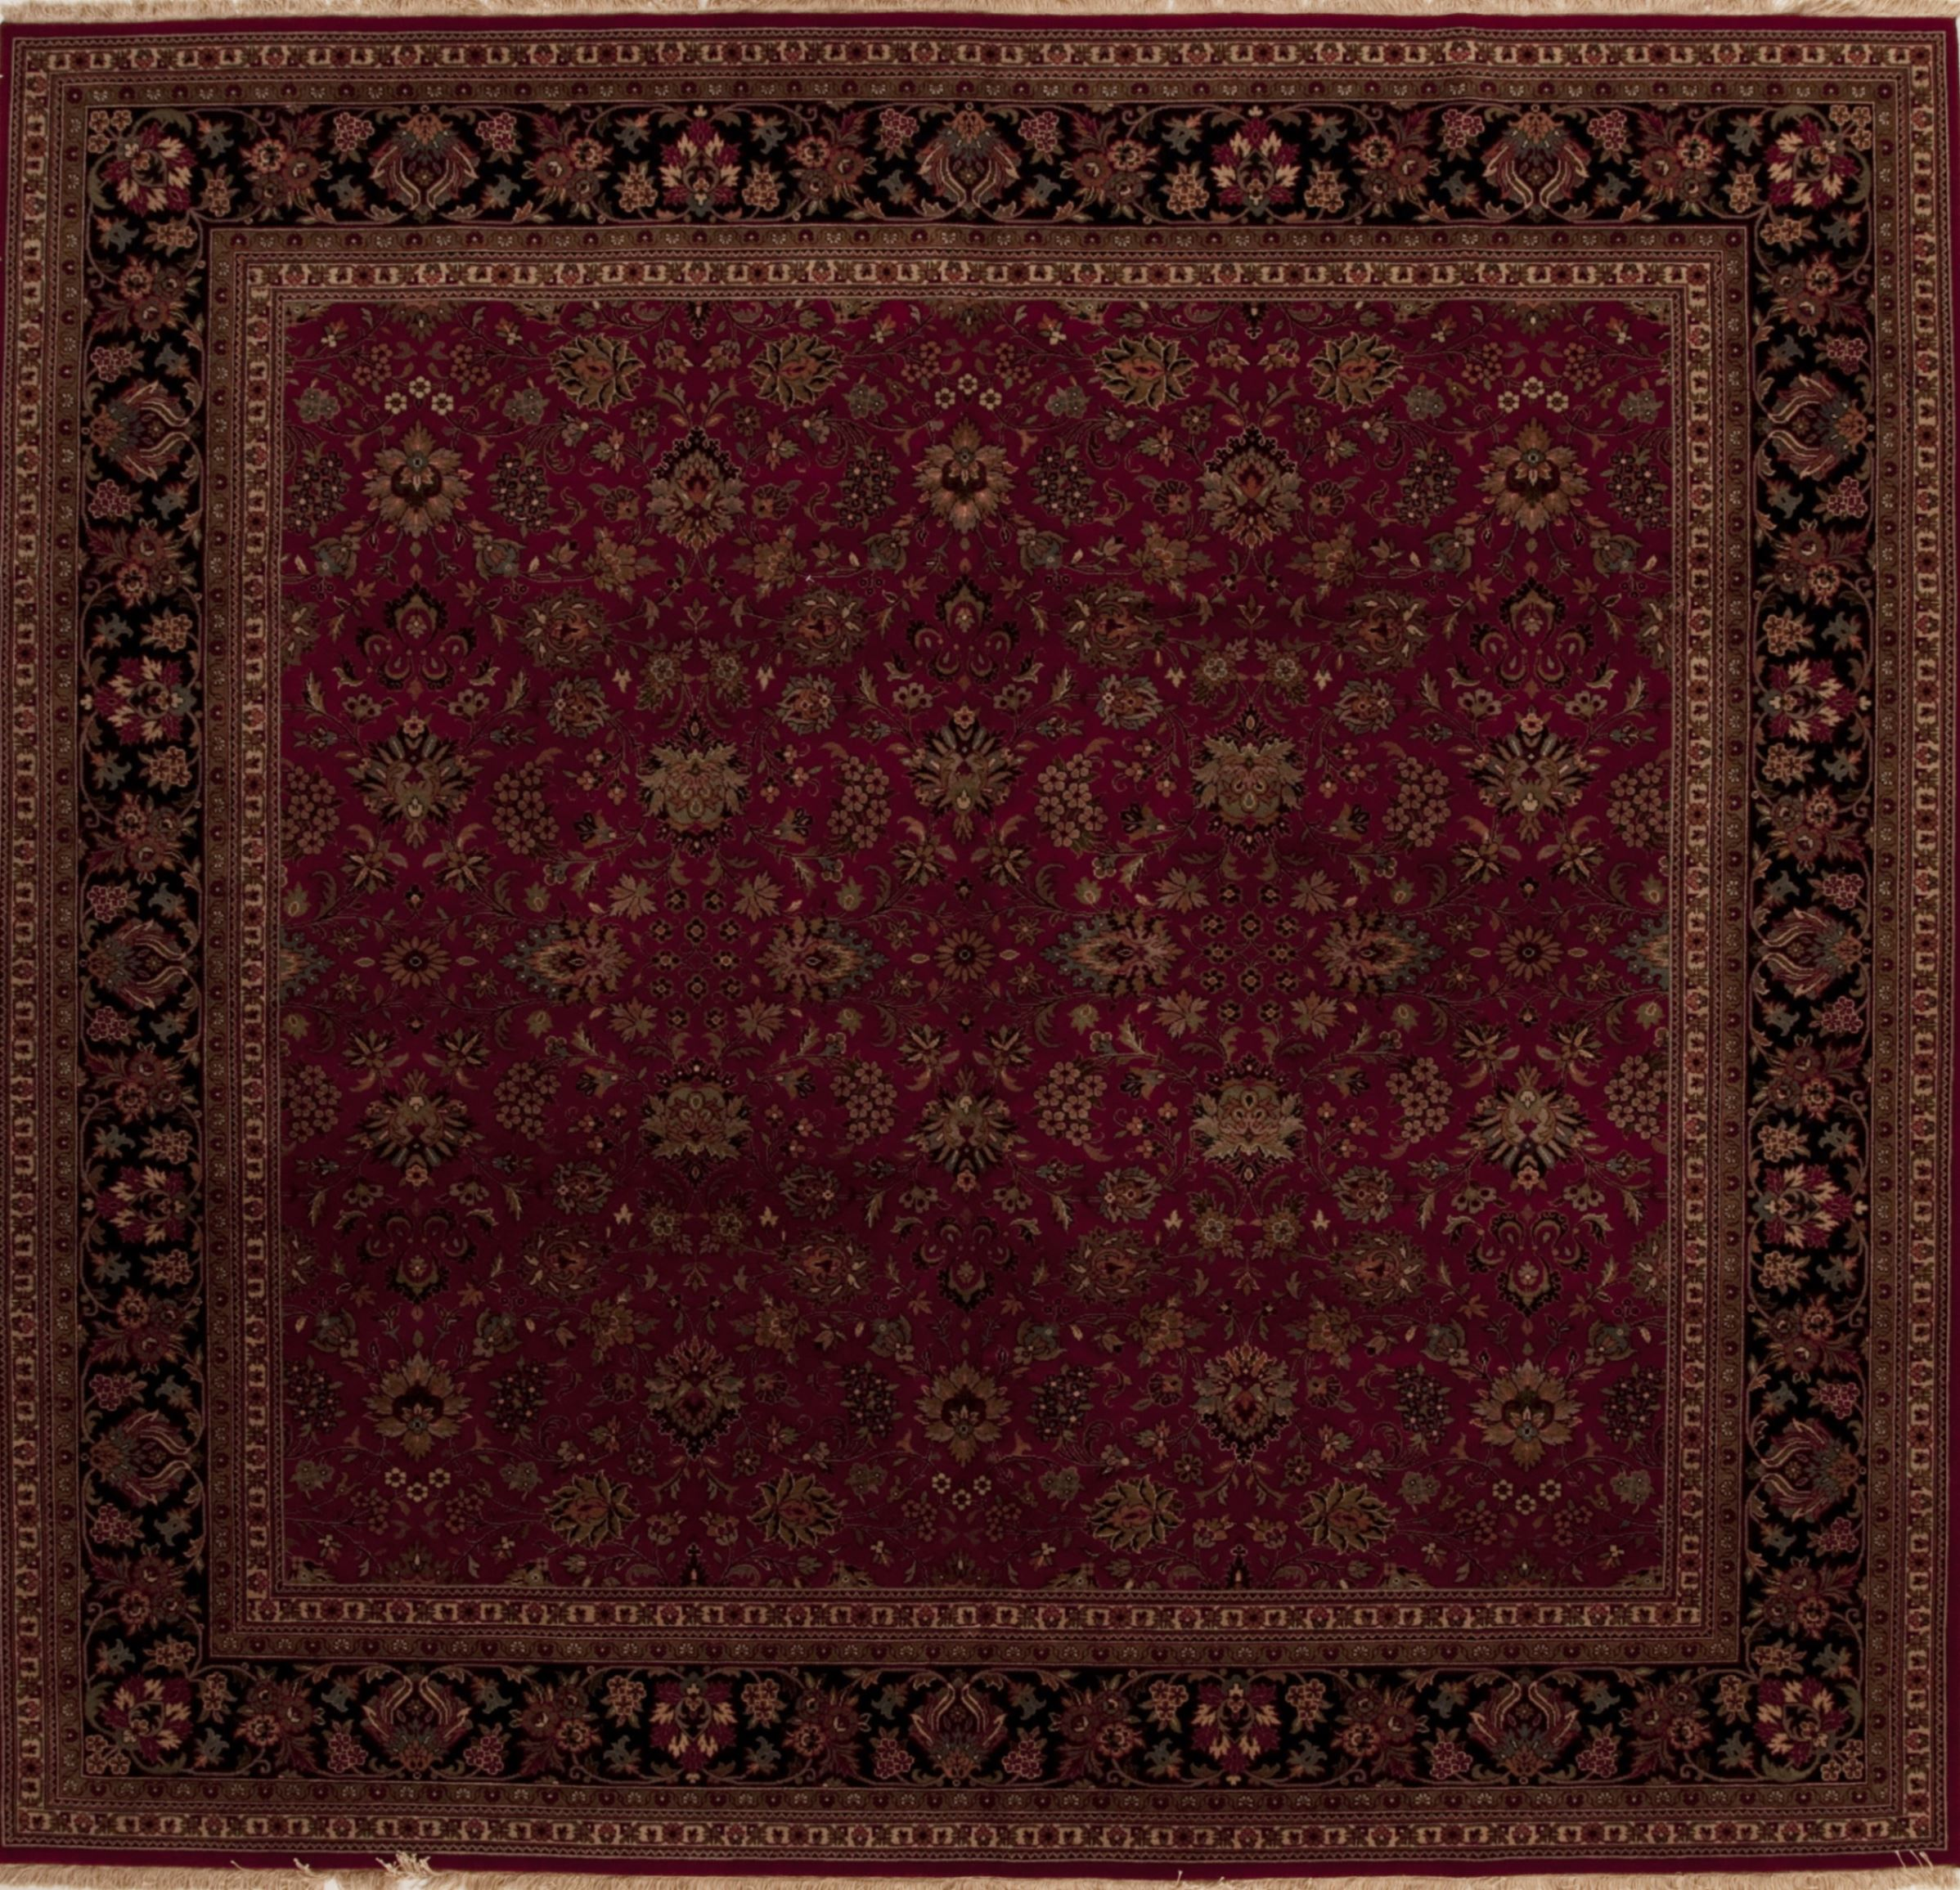 Red Square 9 Ft And Larger Wool Carpet